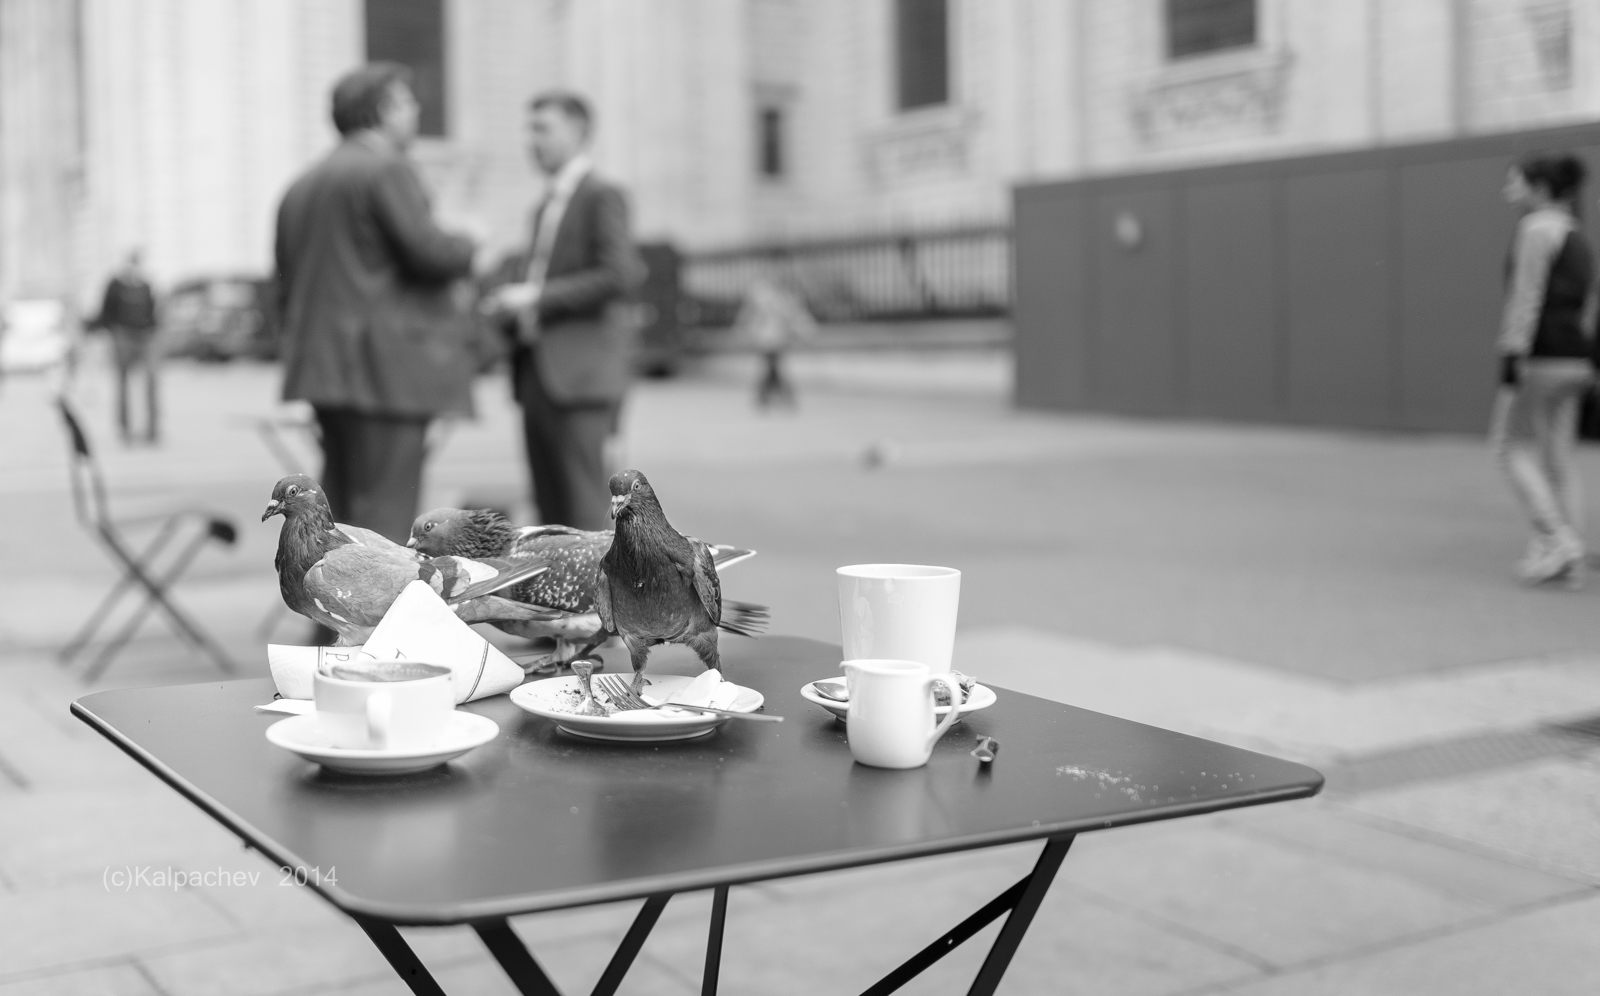 Pigeons attack Paul cafe at St. Paul Cathedral, London